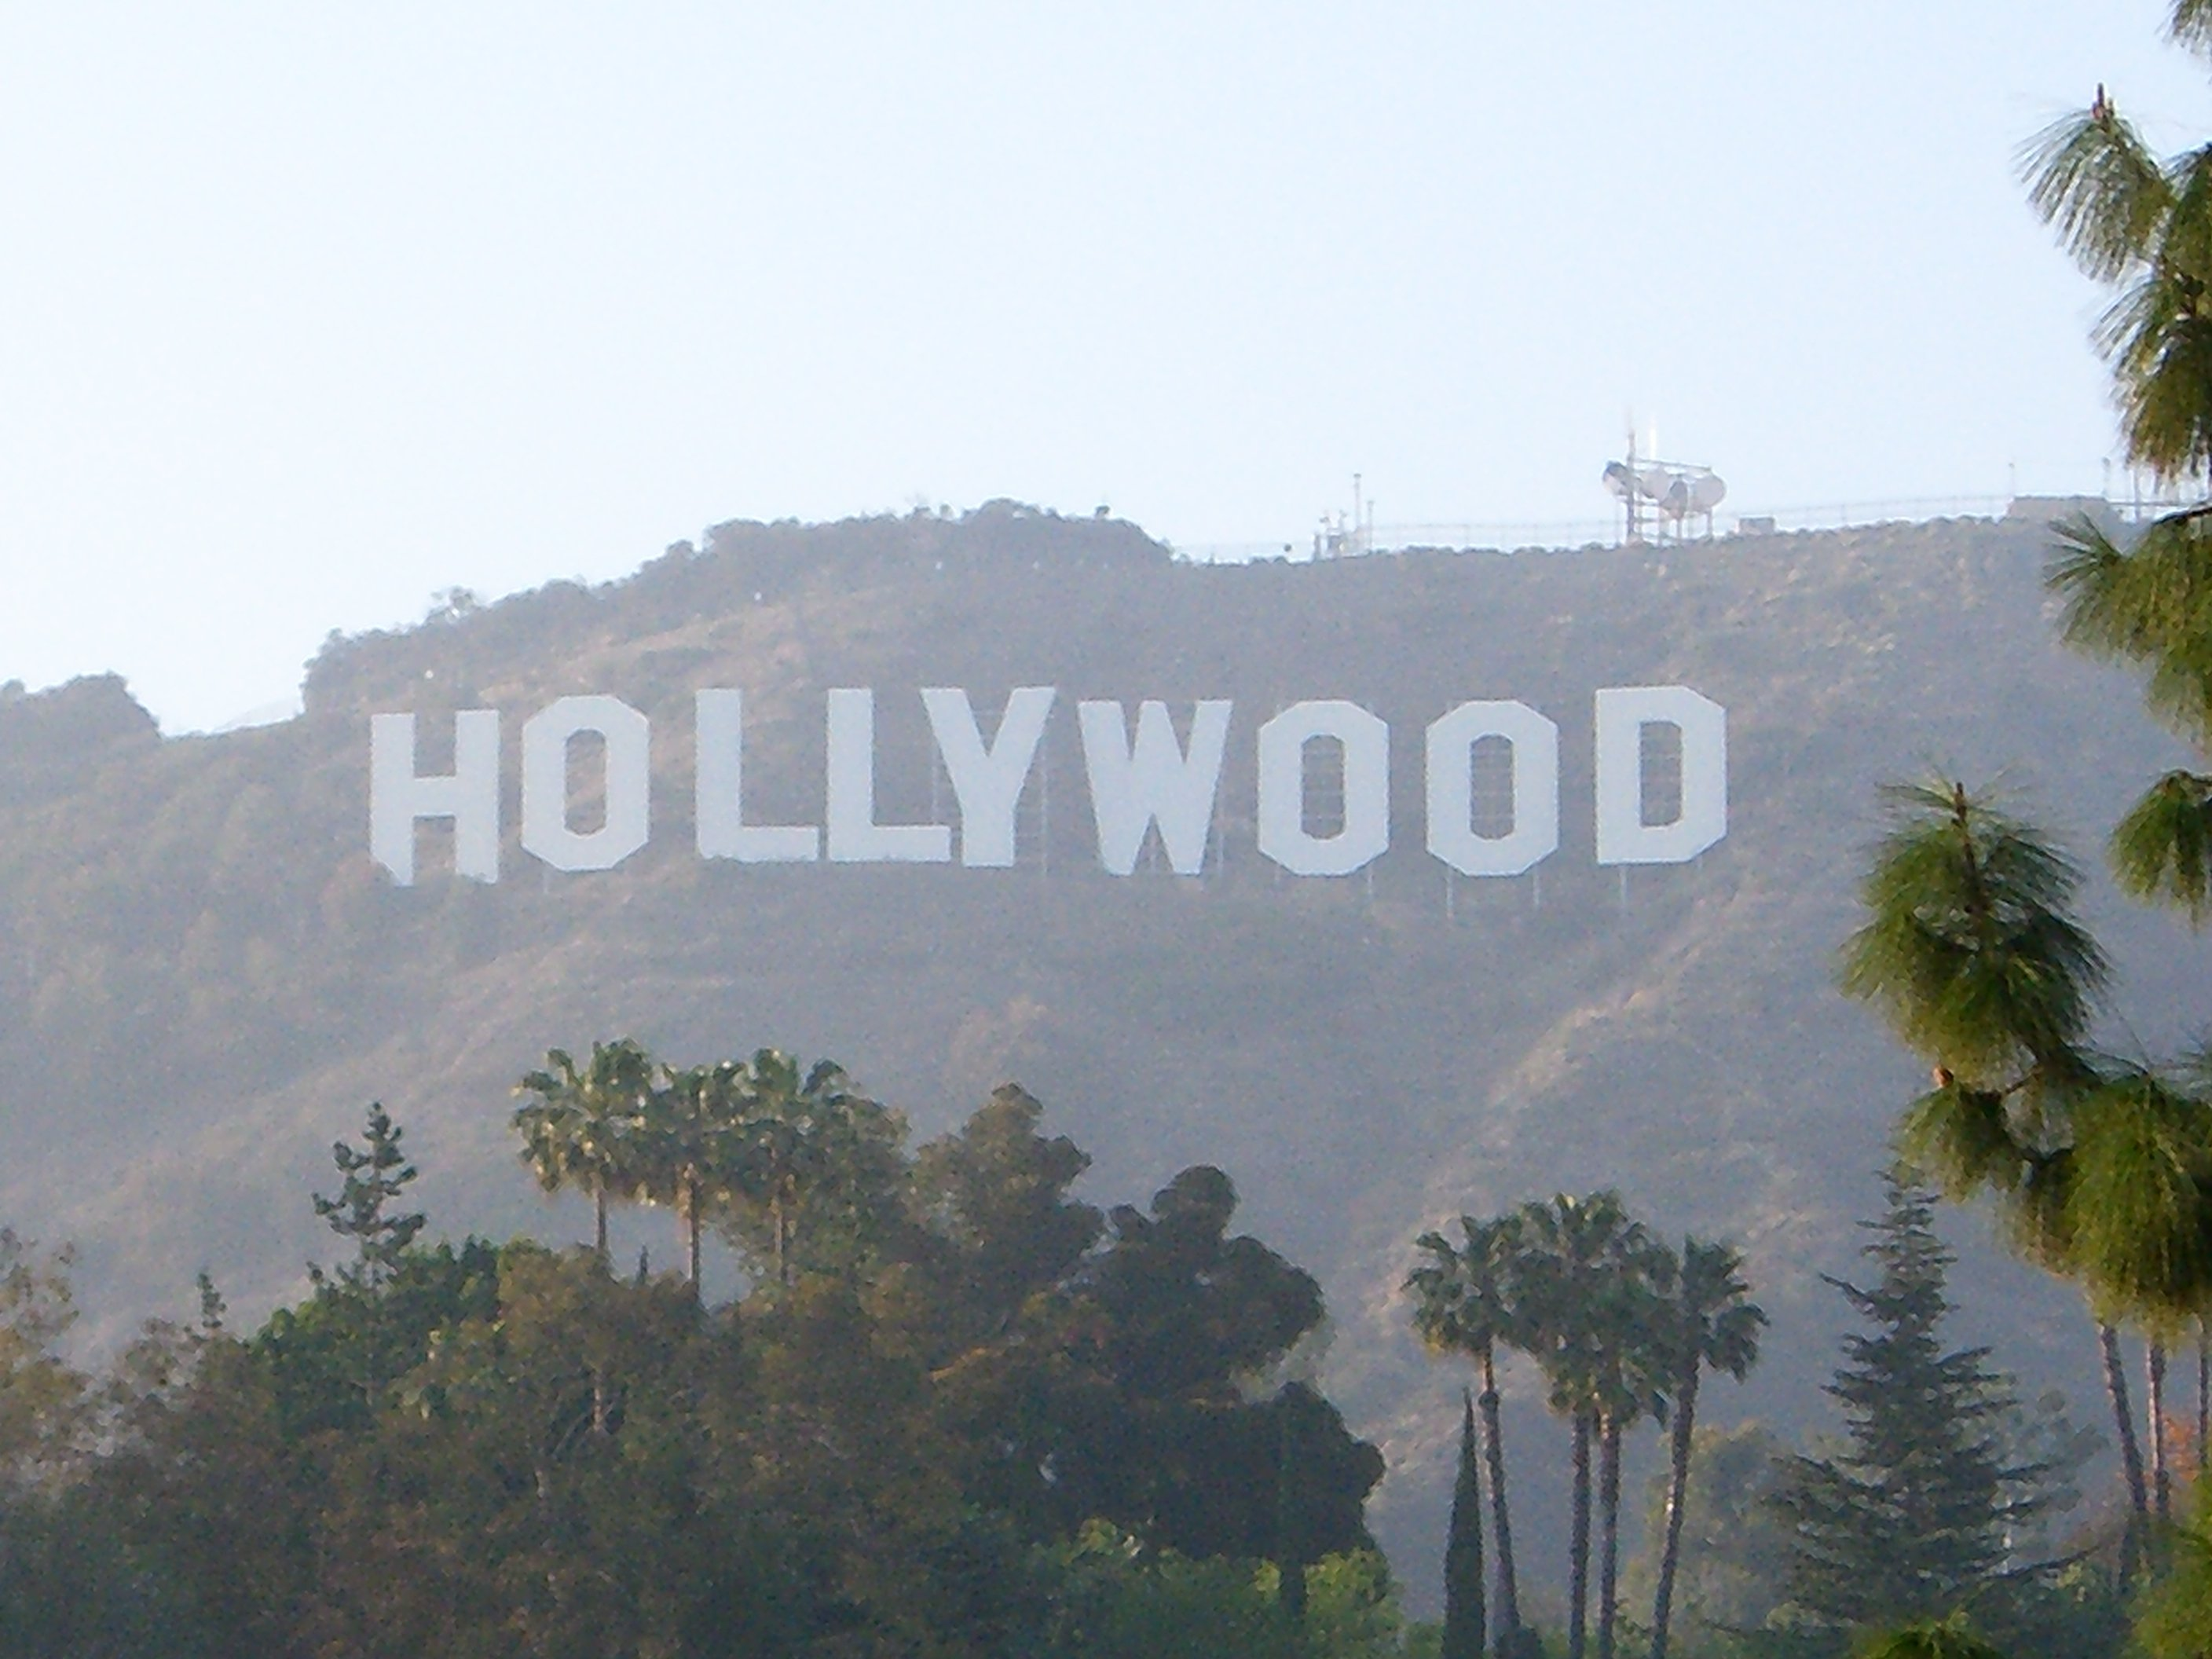 To The Hollywood Sign Wallpaper PicsWallpapercom 2816x2112